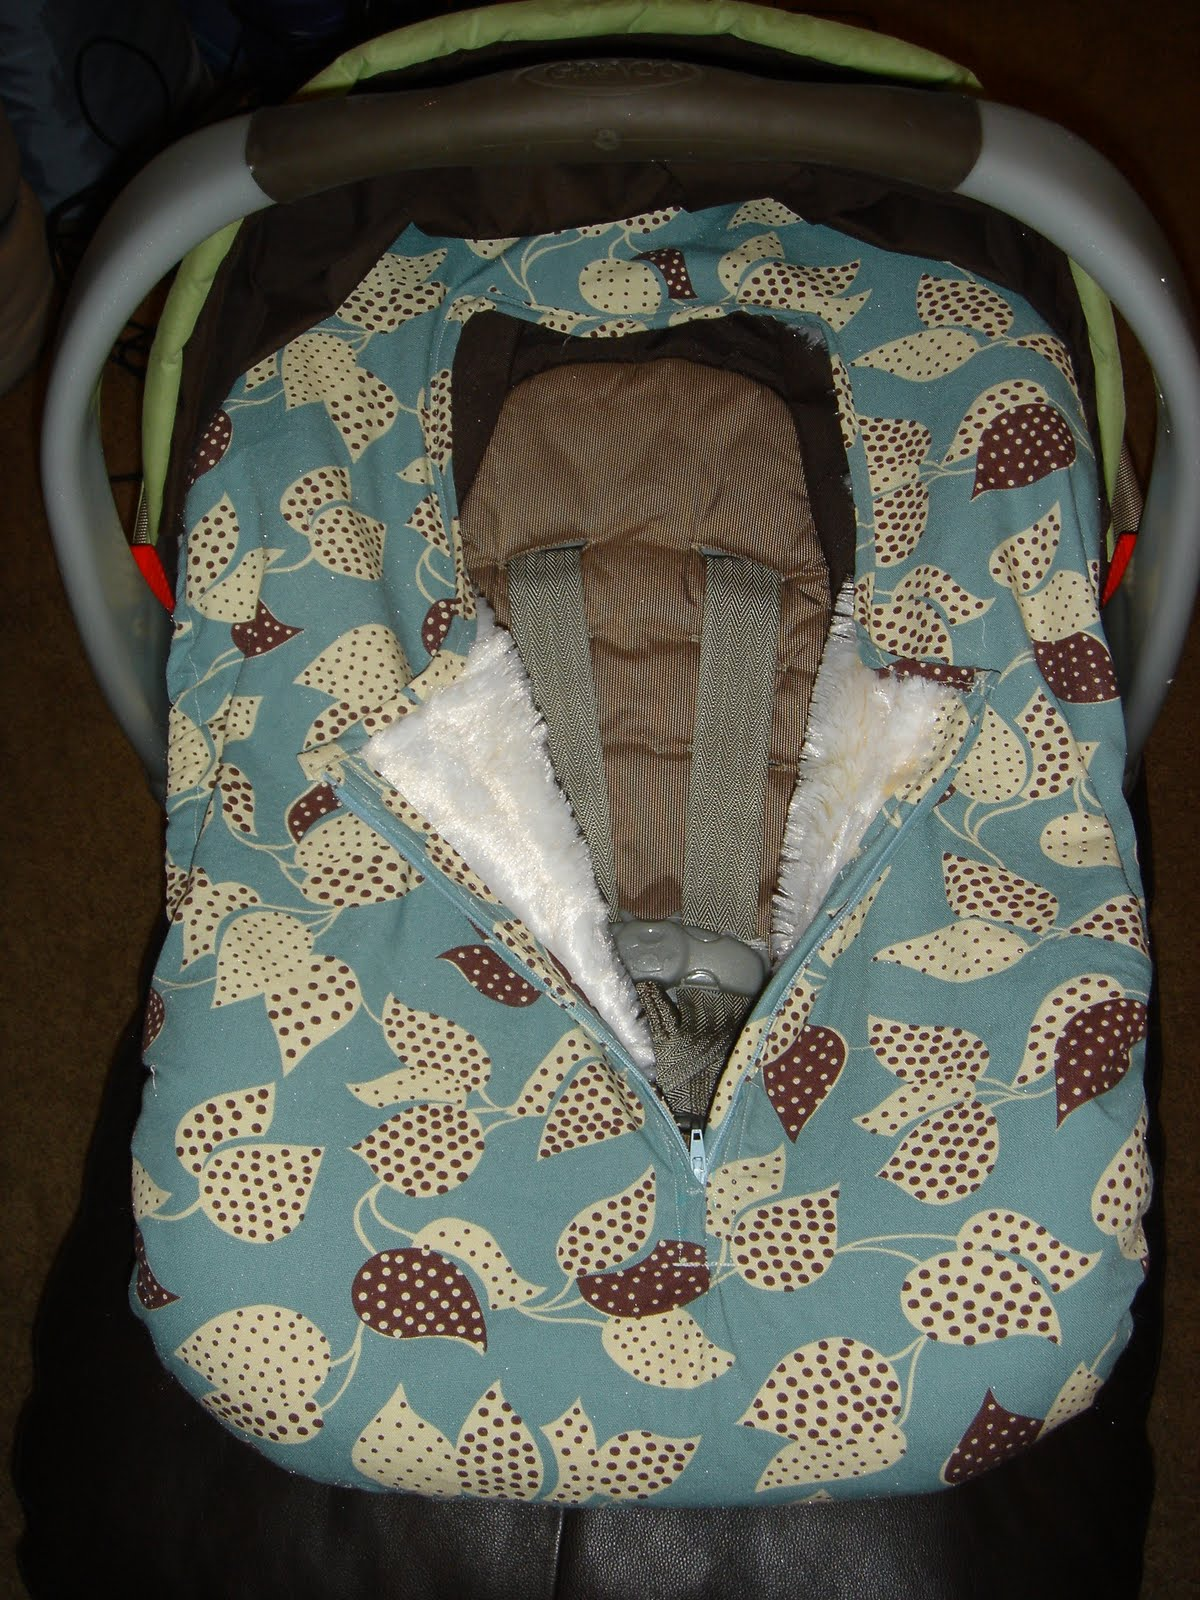 Dink's Gear: Car Seat Cover w/ Blanket